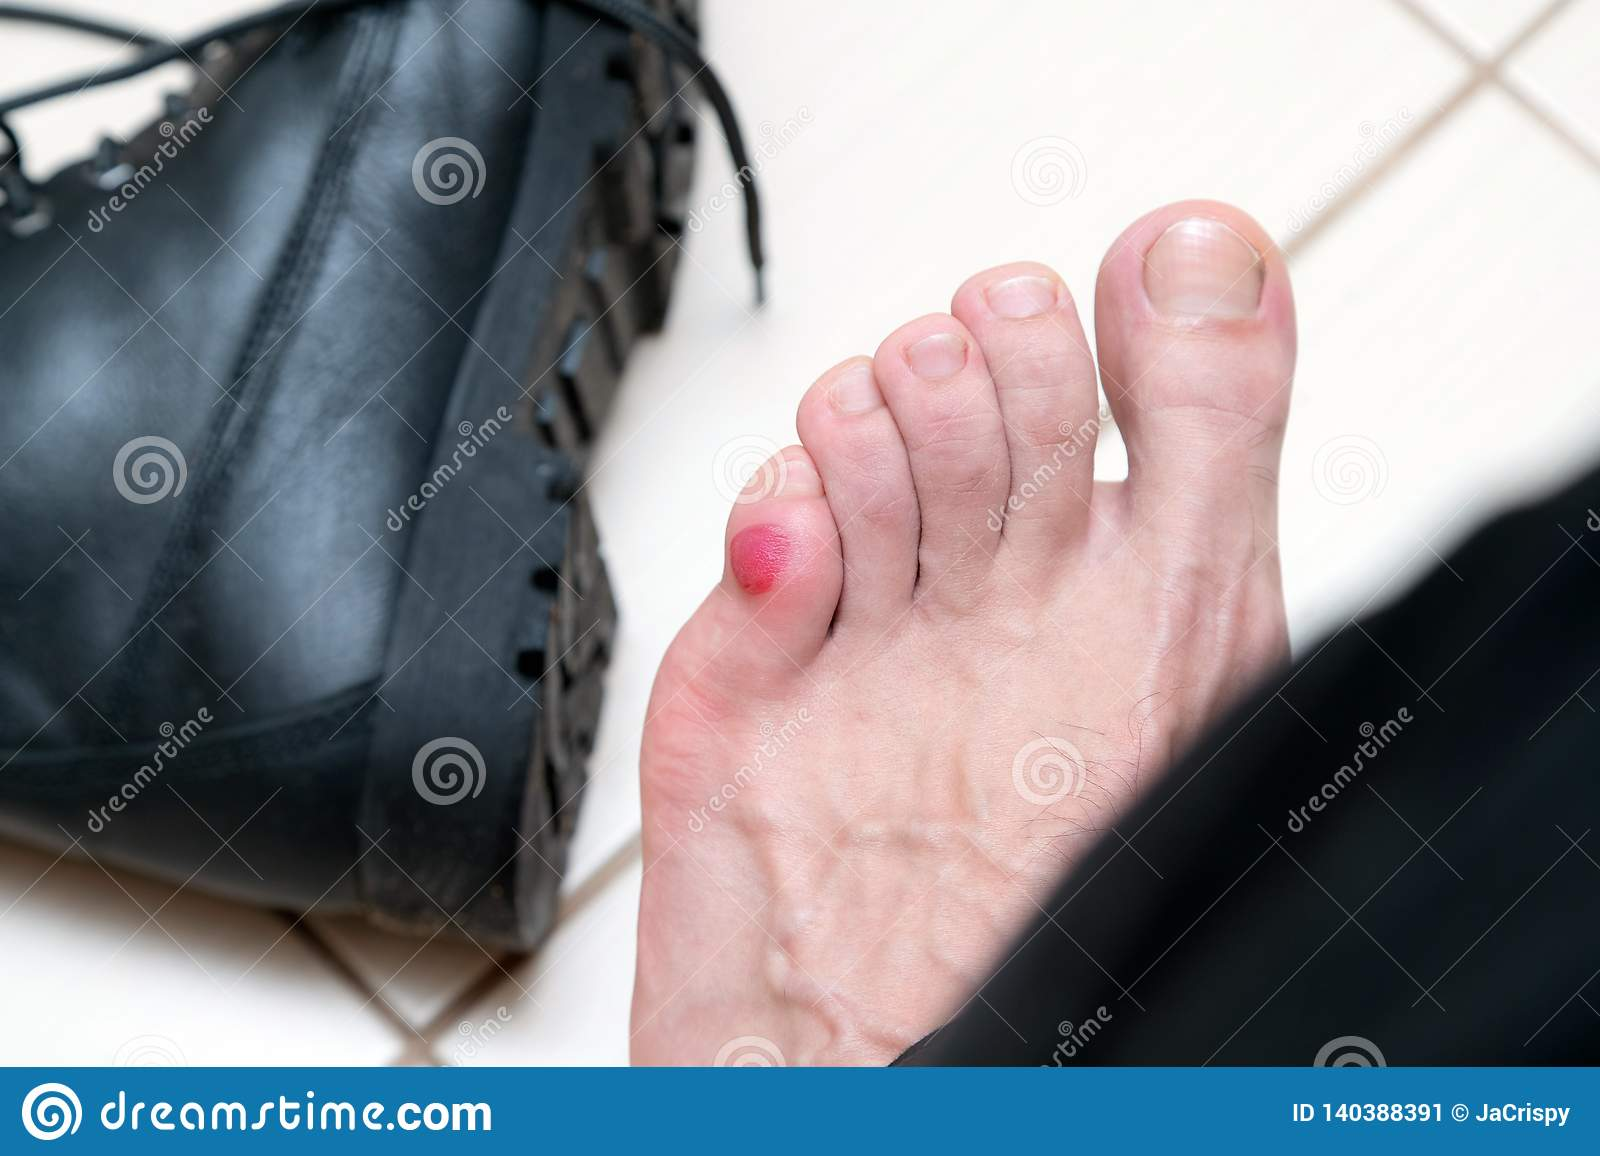 Bloody terrible blister on human feet with new black leather shoes laying around